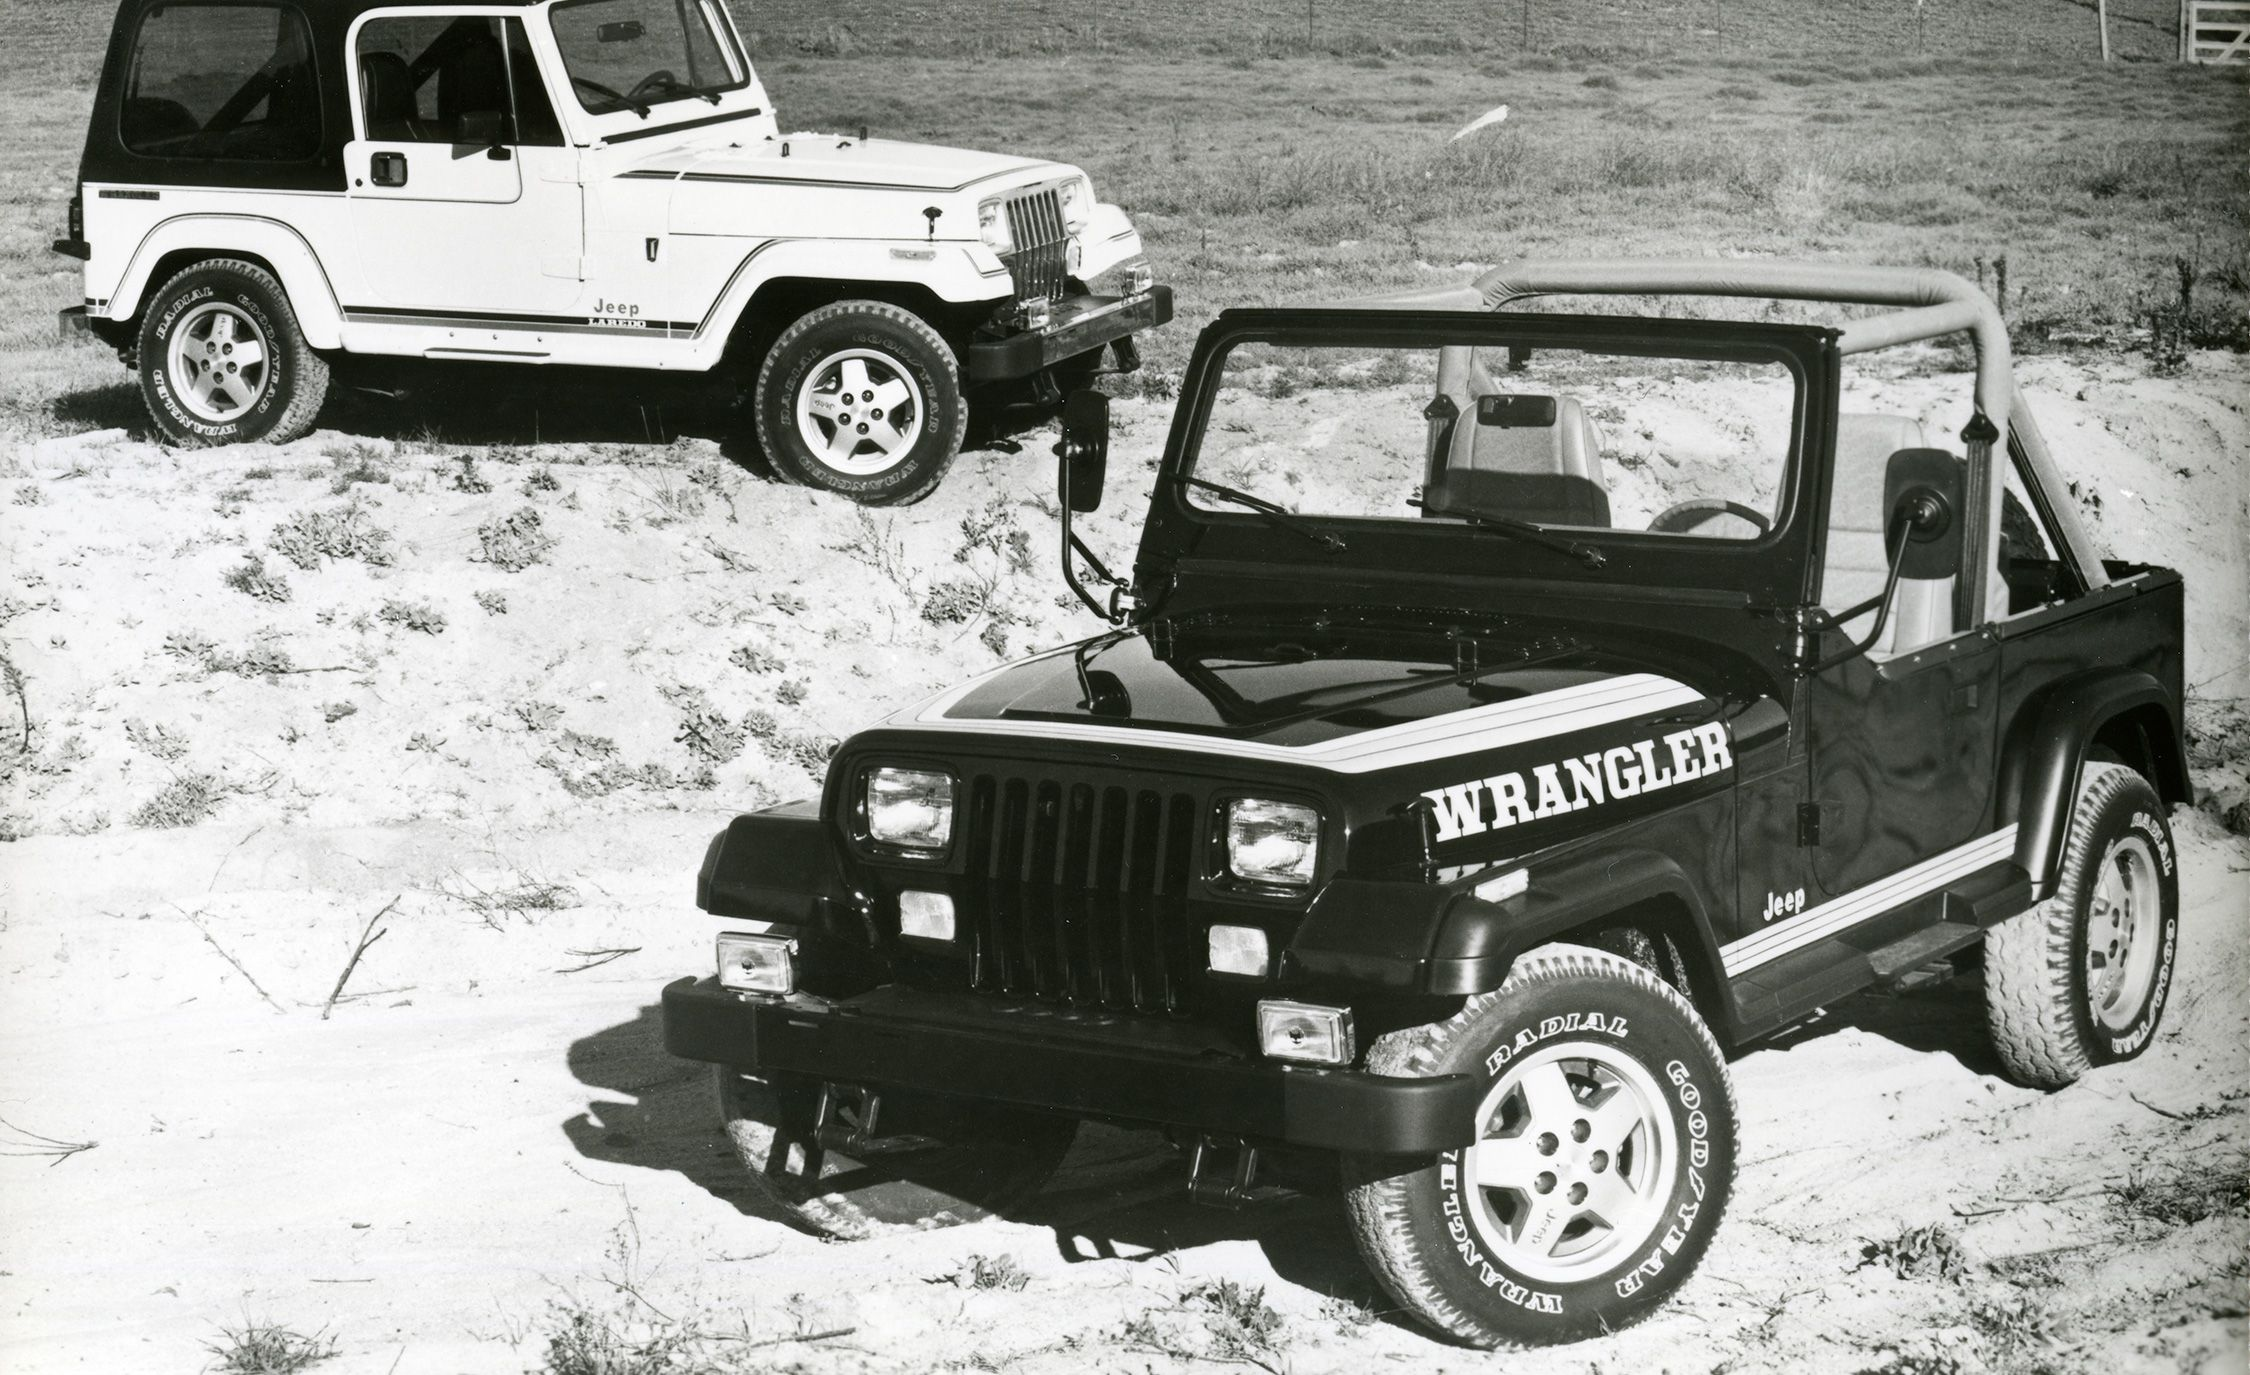 The Complete Visual History Of Jeep Wrangler From 1986 To Present 1945 Willys Engine Diagrams